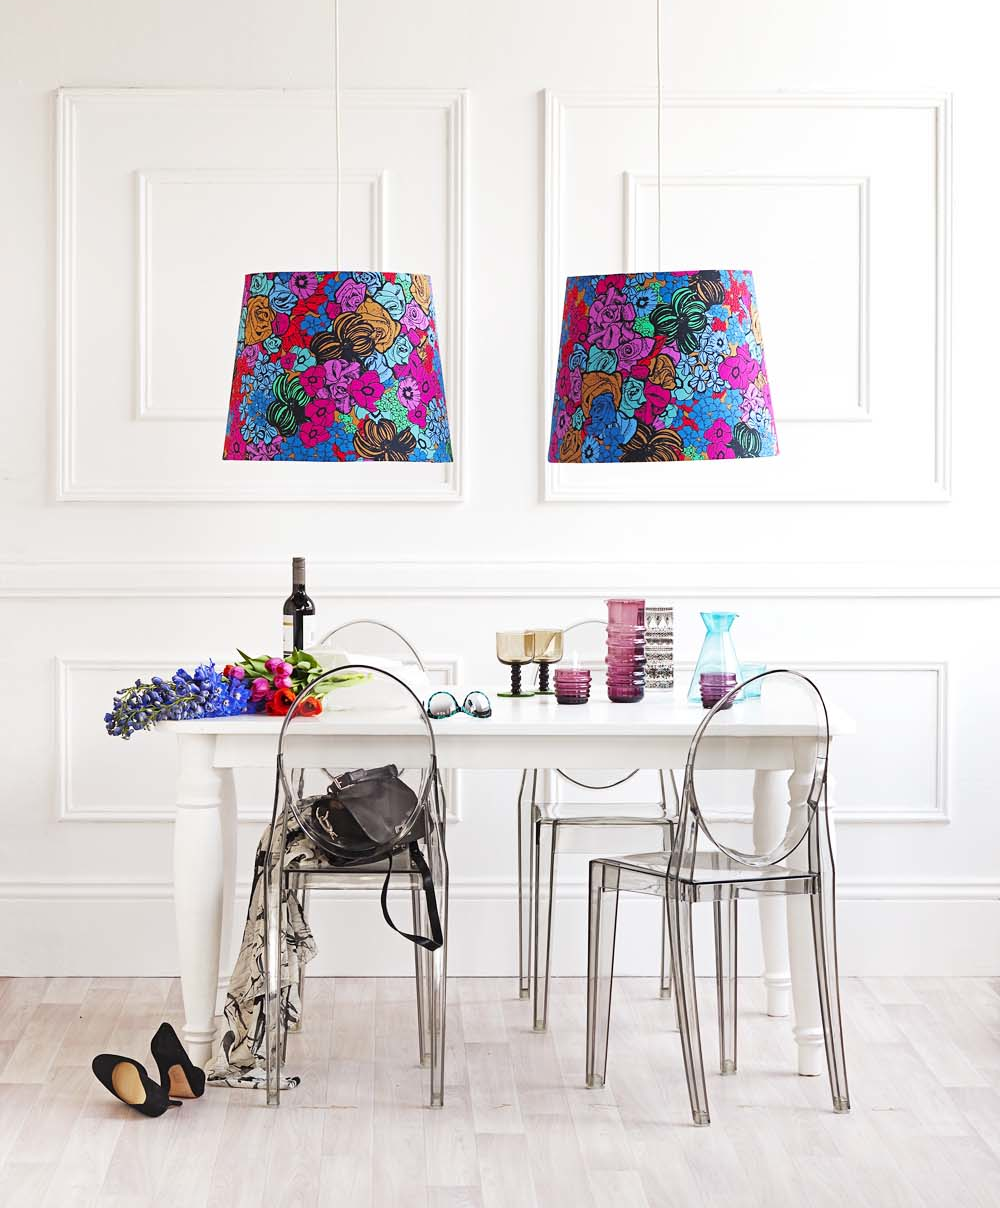 Sixhands Andy lampshades in Gemstone featured in RealLiving